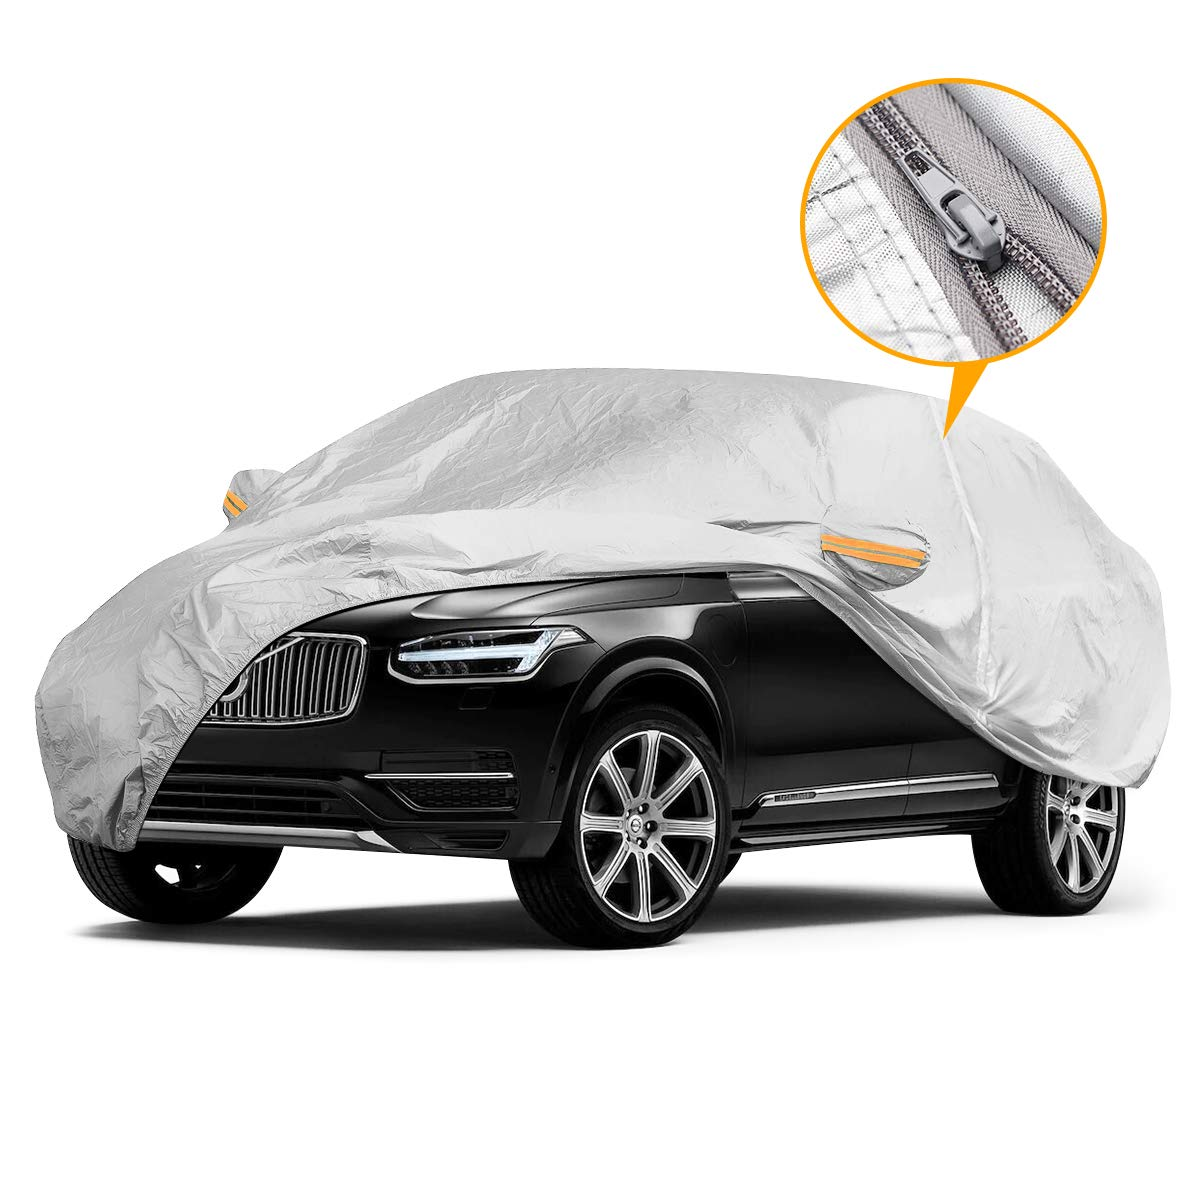 Effectively Reduce Temperature Universal UV Waterproof Full Car Cover Outdoor Auto Sun Protection Covers Dustproof Universal Car Cover for SUV Waterproof 201Lx76Wx60H Snowproof All Weather